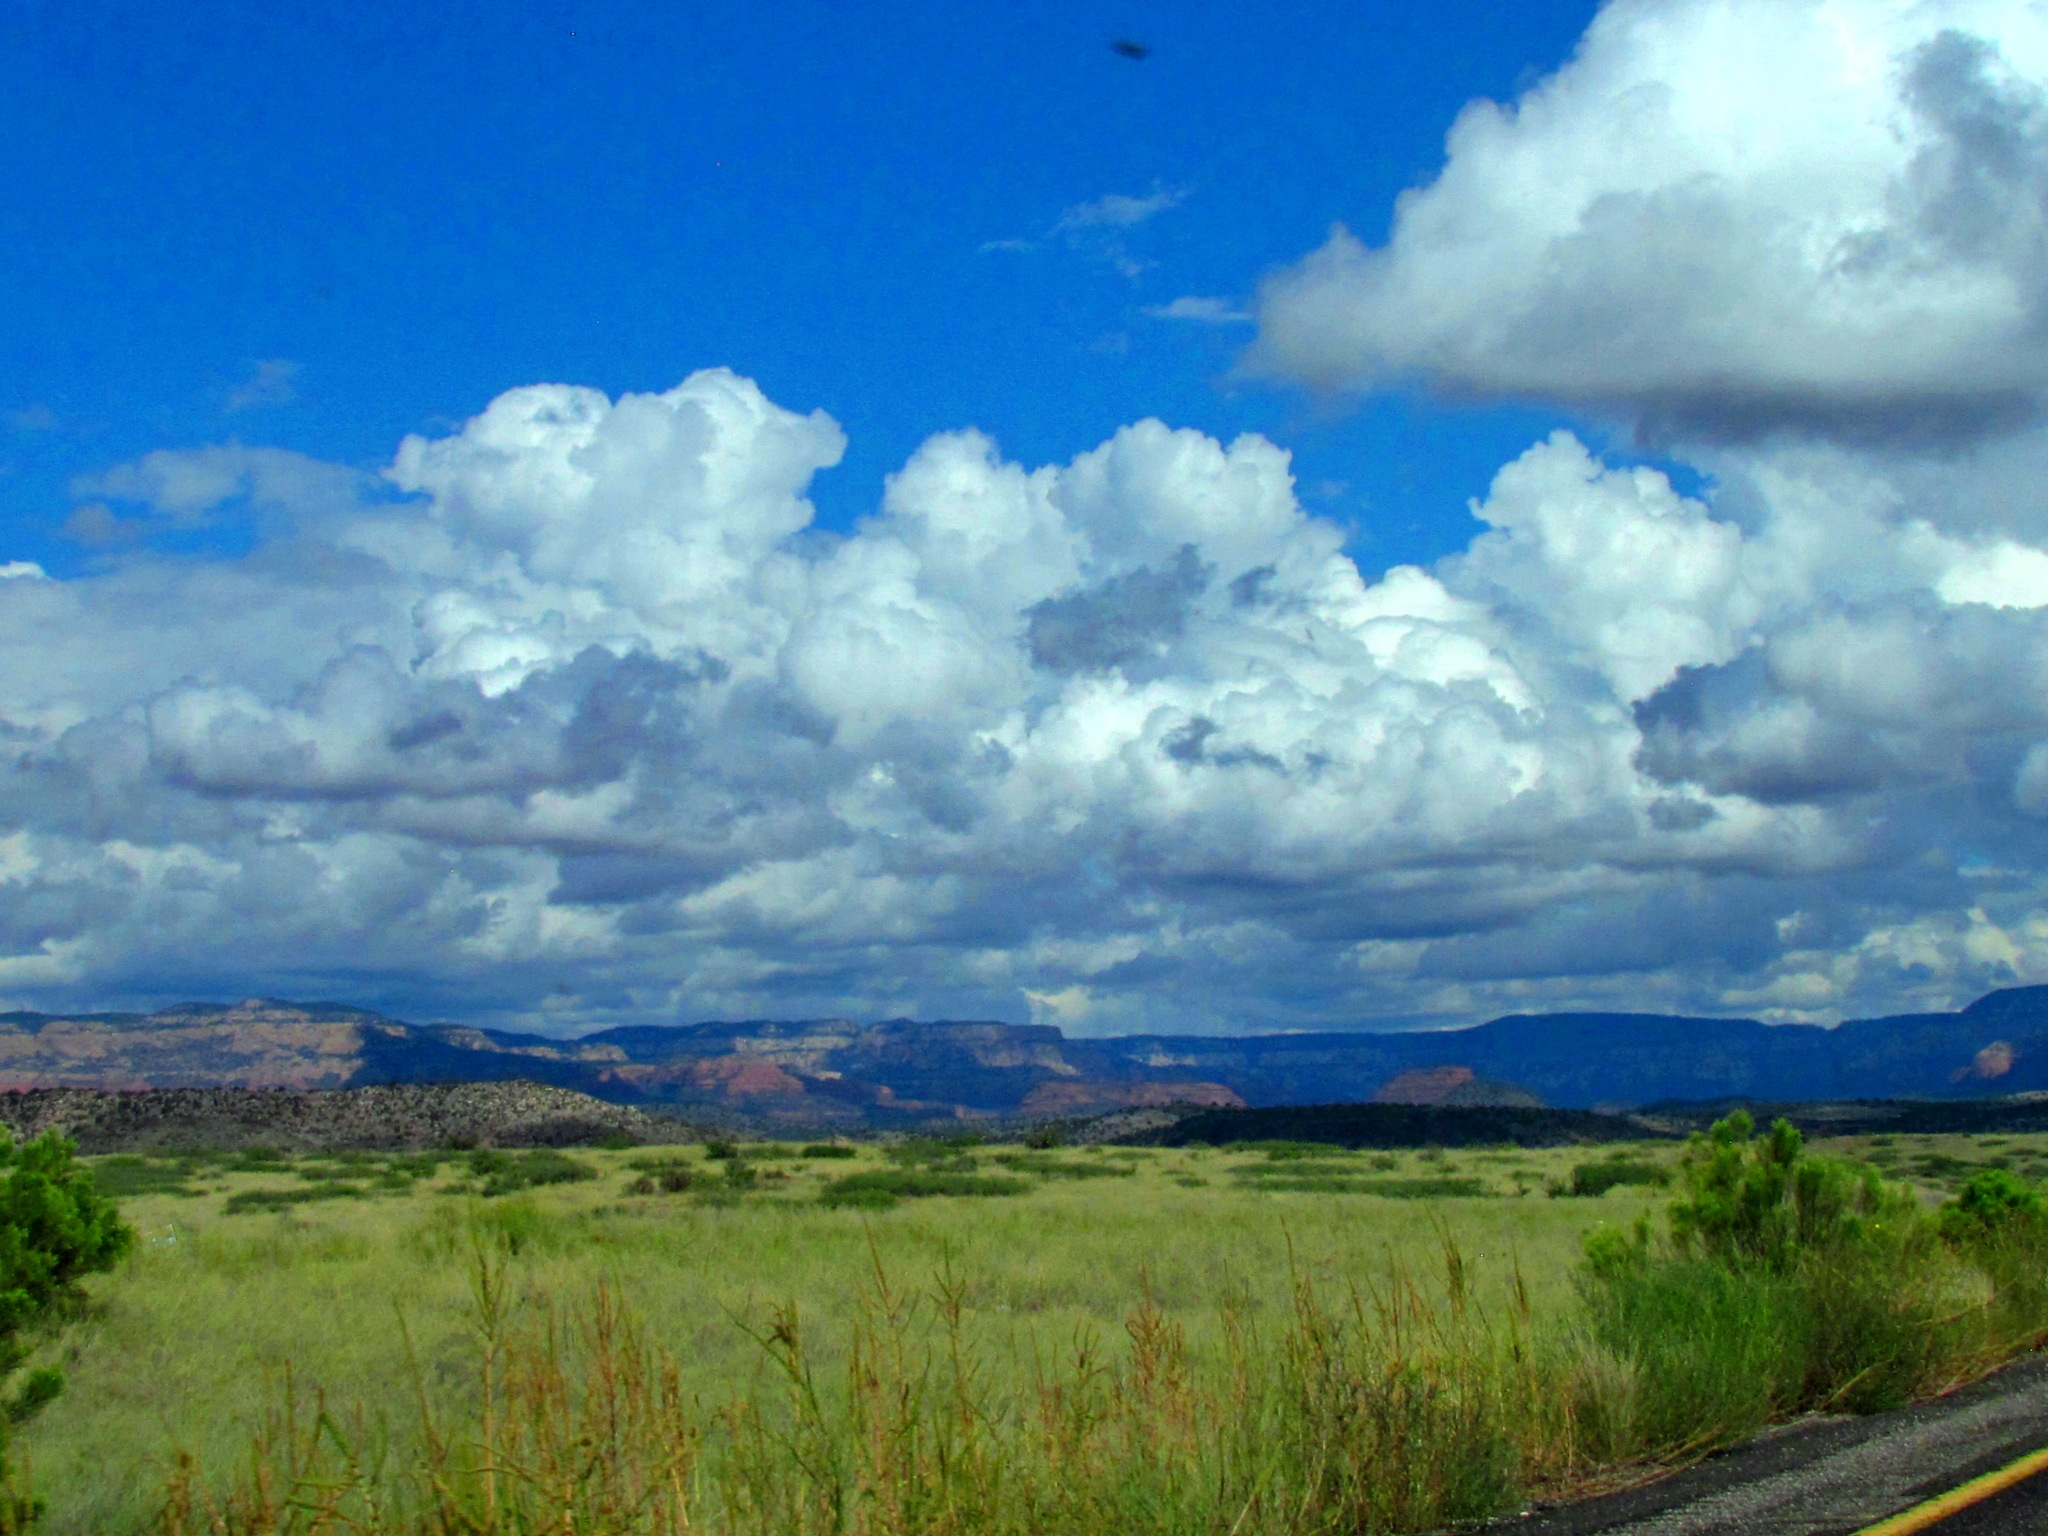 Sedona in the Distance by molterserrano